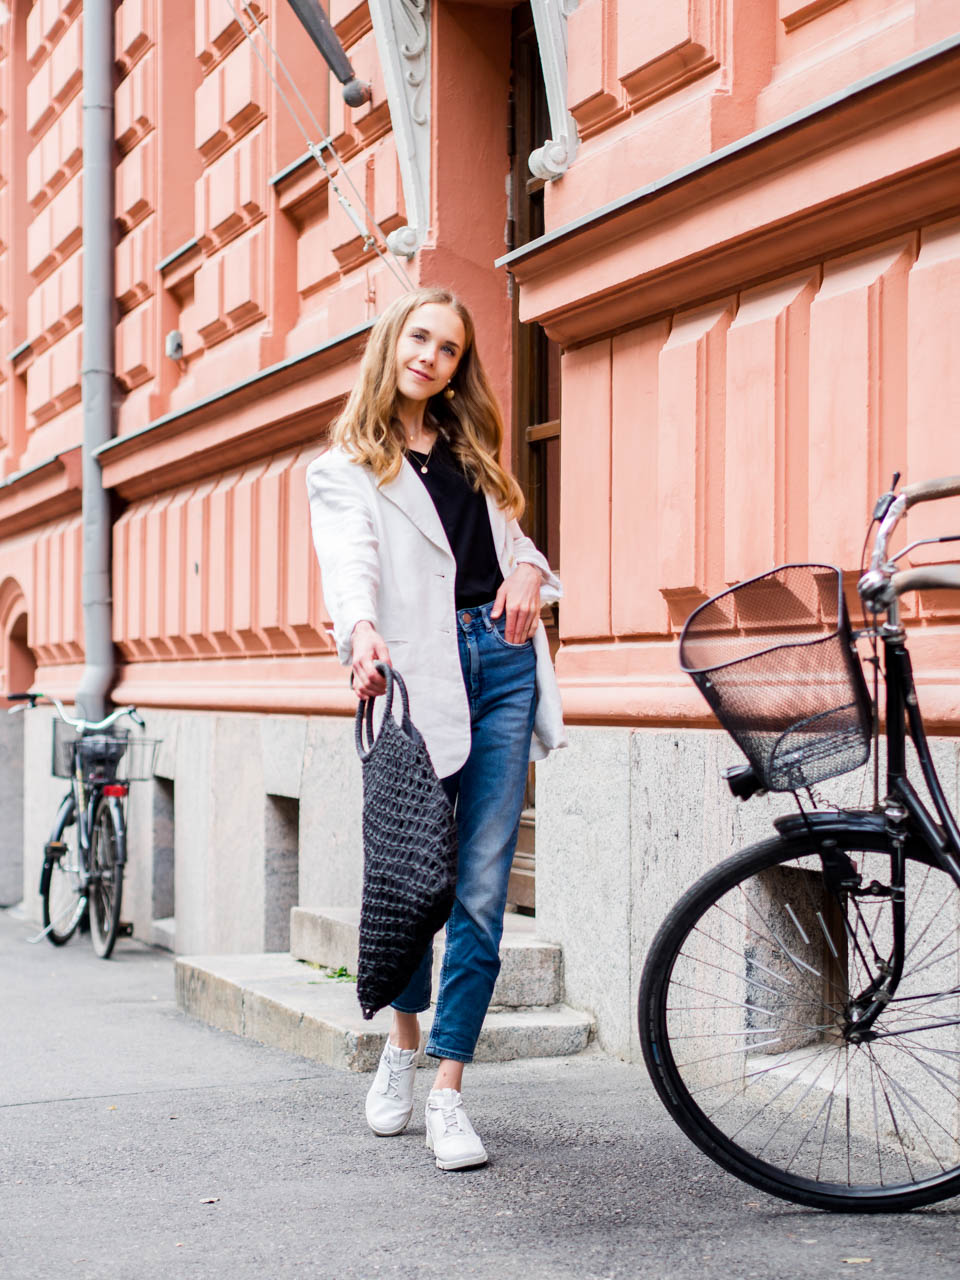 denim-girl-outfit-streetstyle-scandinavia-fashion-blogger